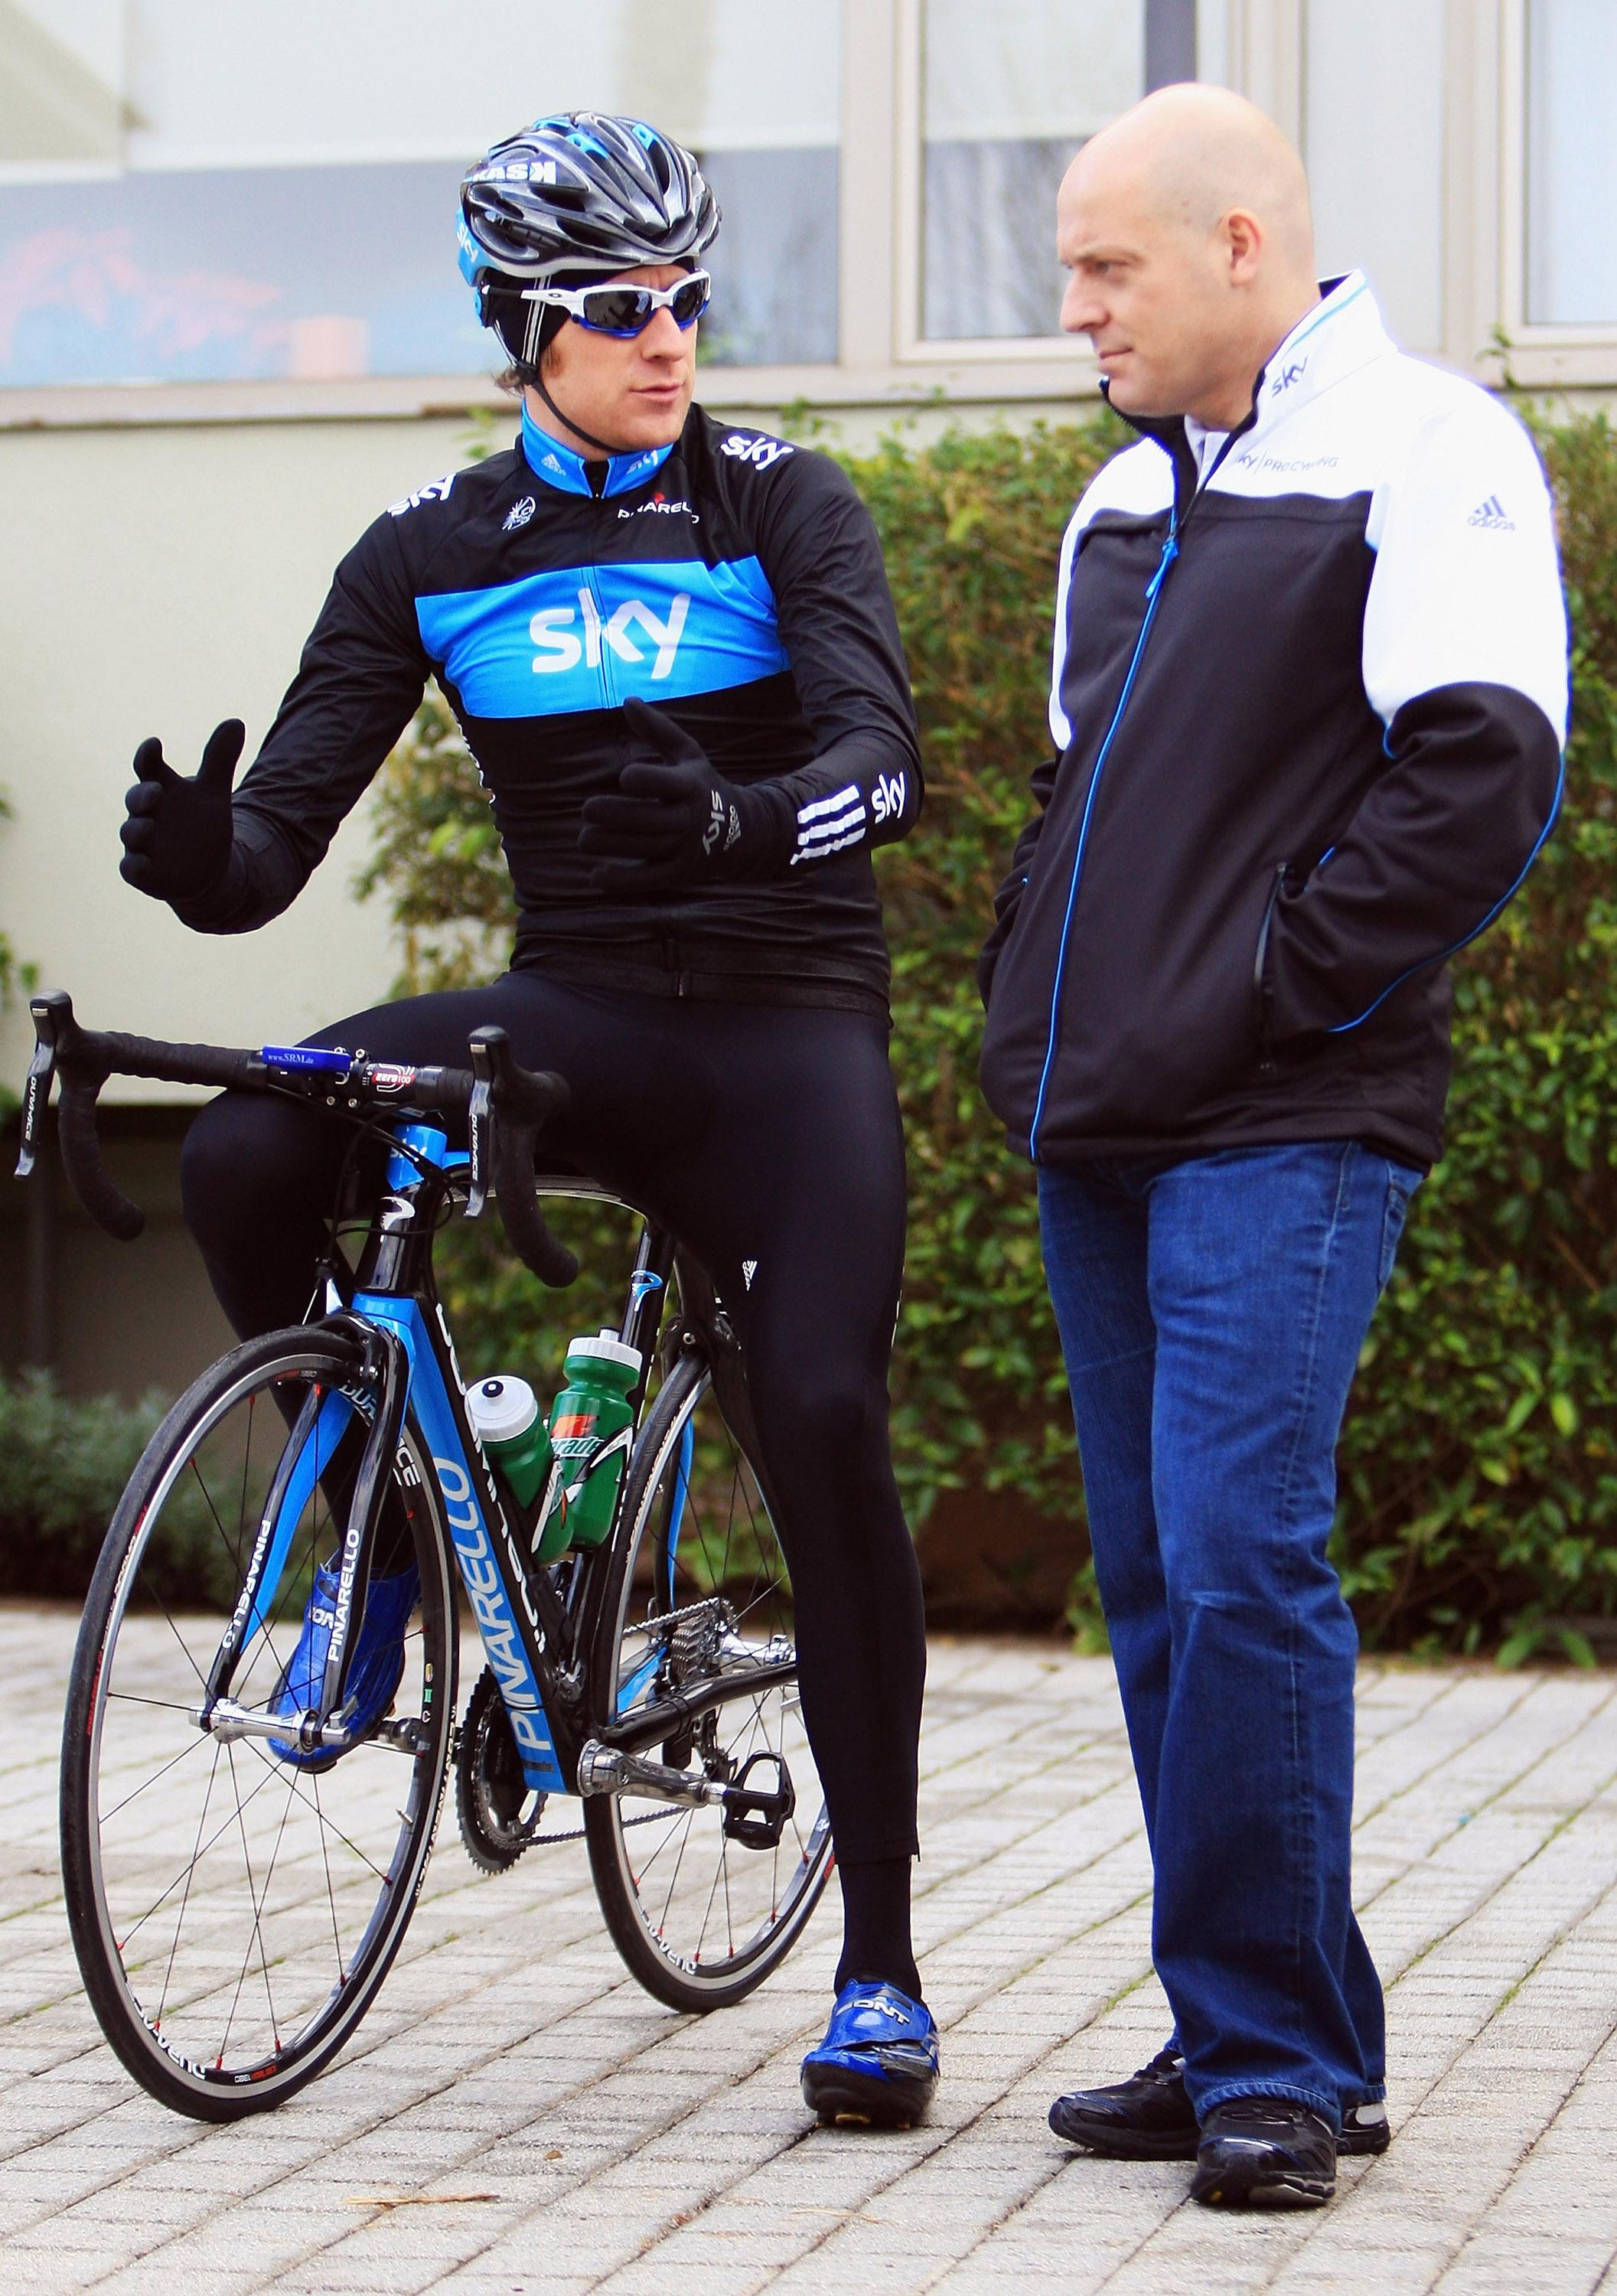 Bradley Wiggins and Dave Brailsford have been accused of using performance-enhancing drugs